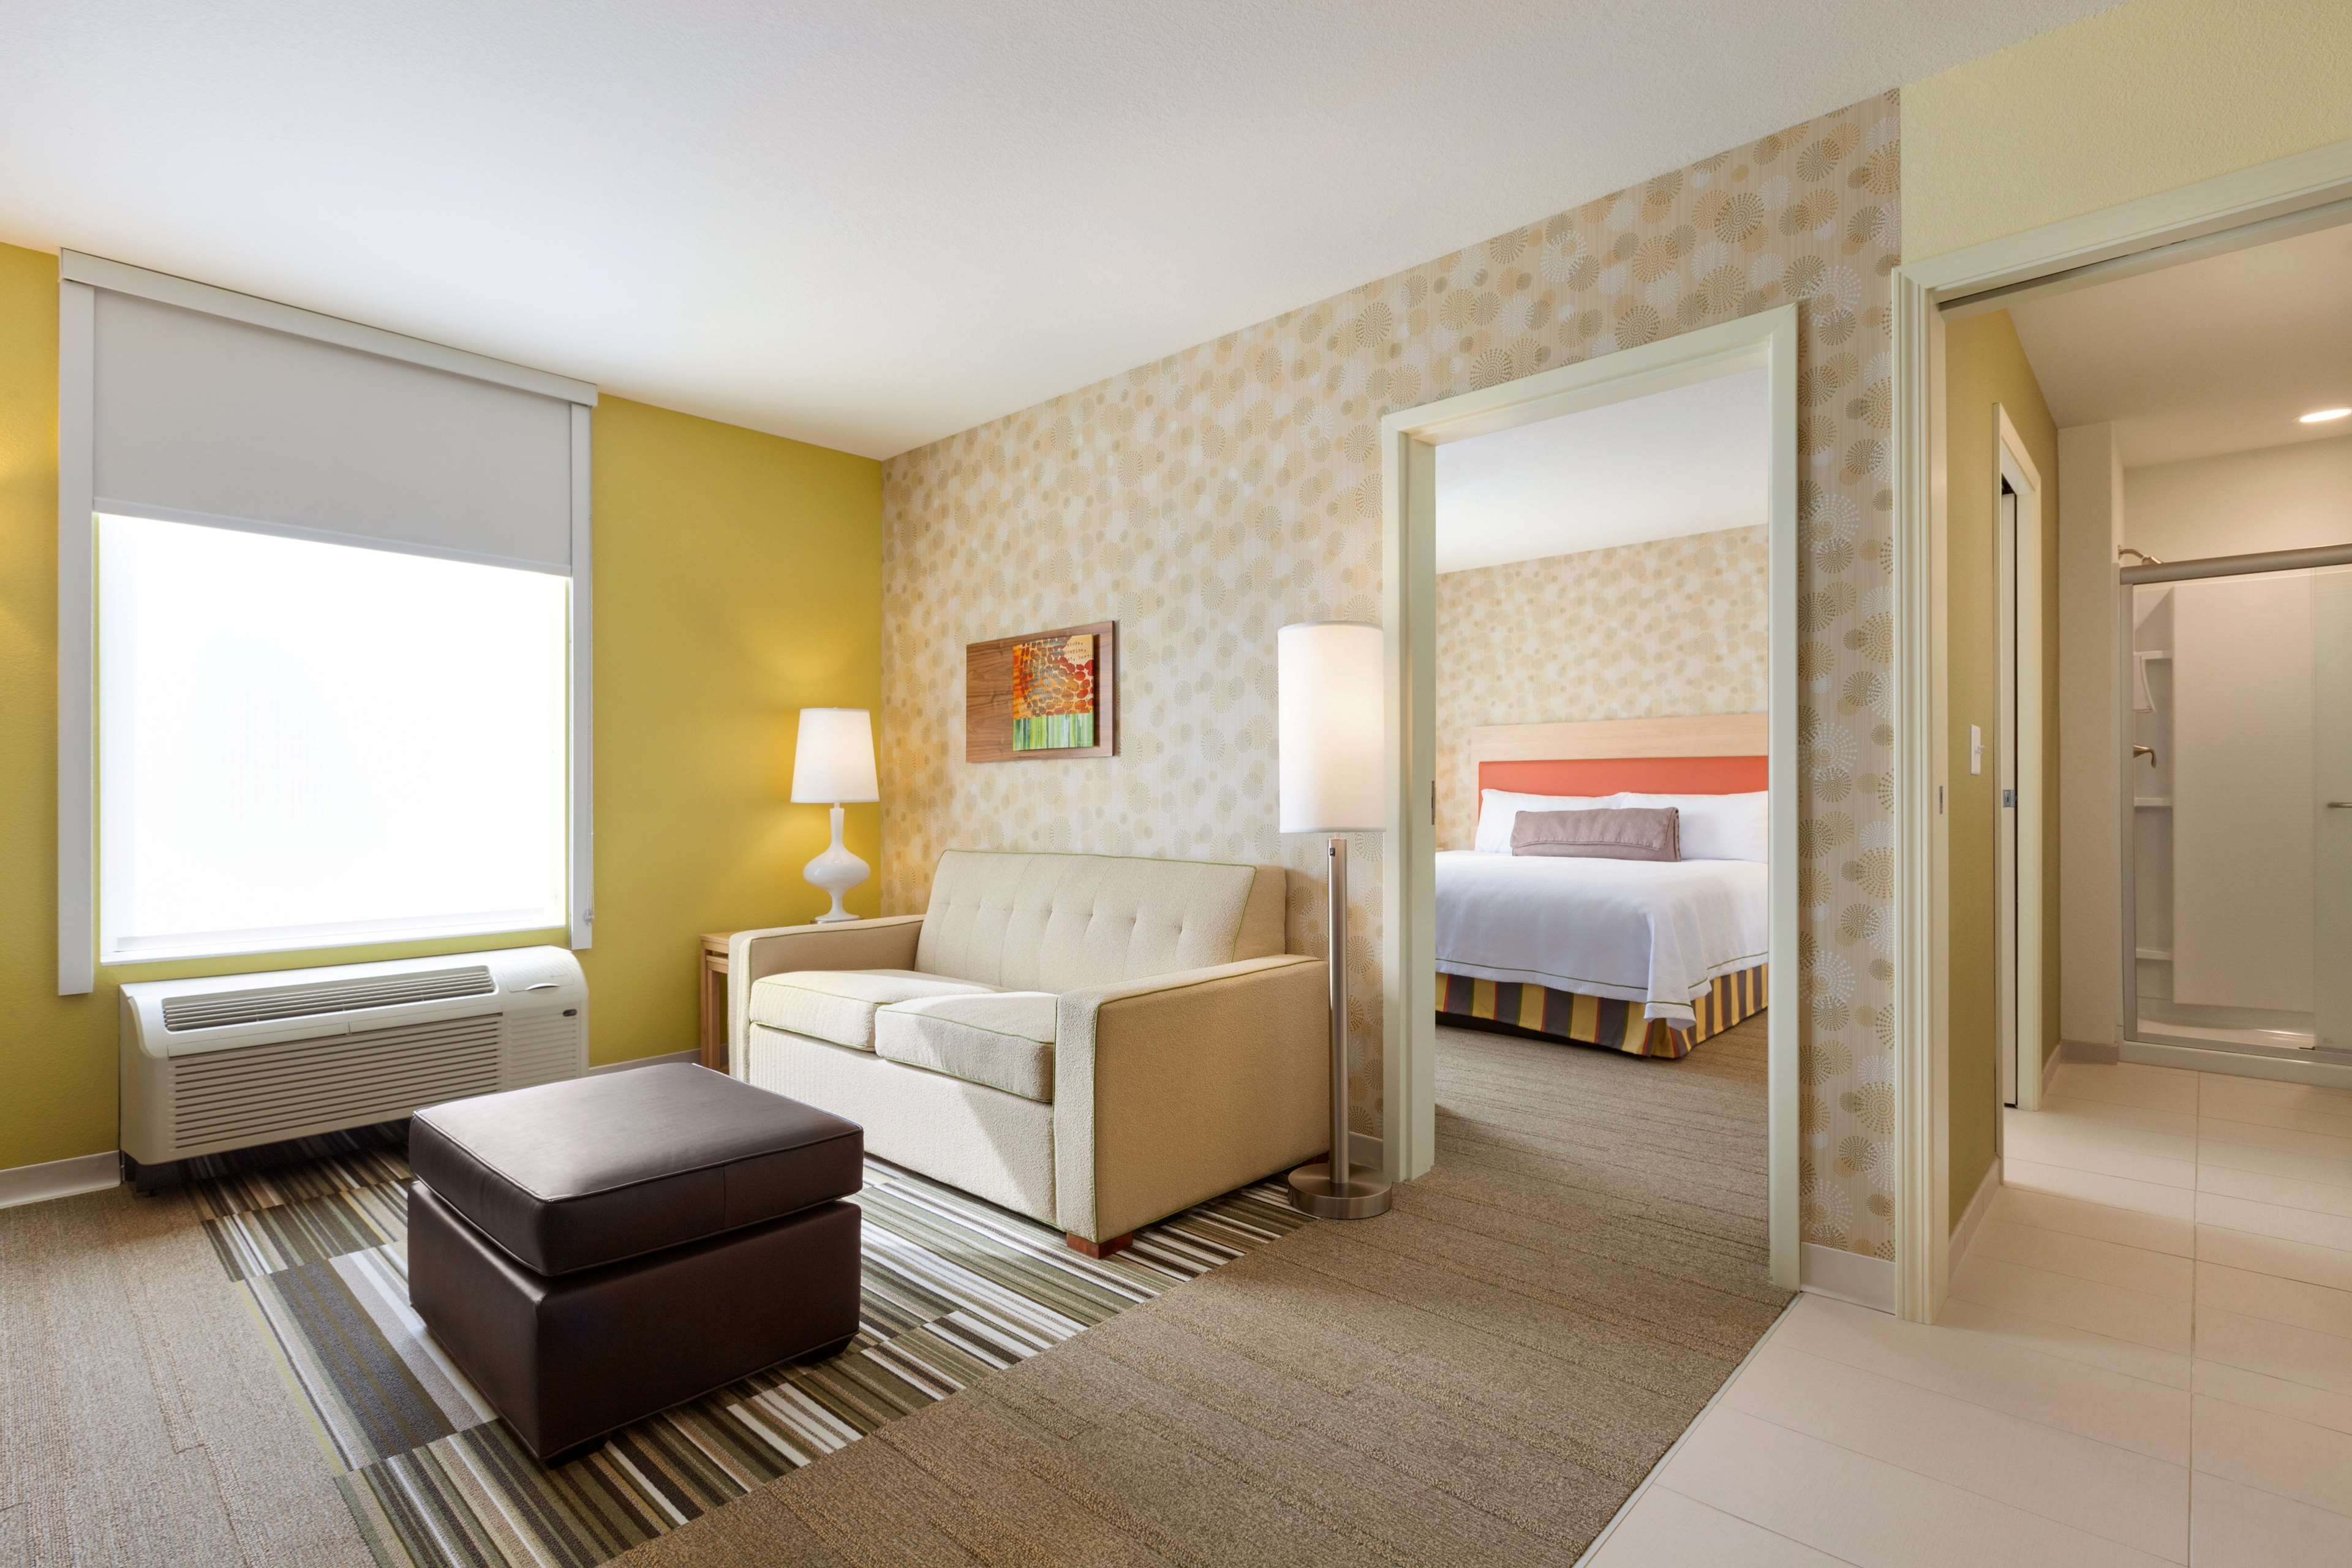 Home2 Suites By Hilton Youngstown West - Austintown image 15